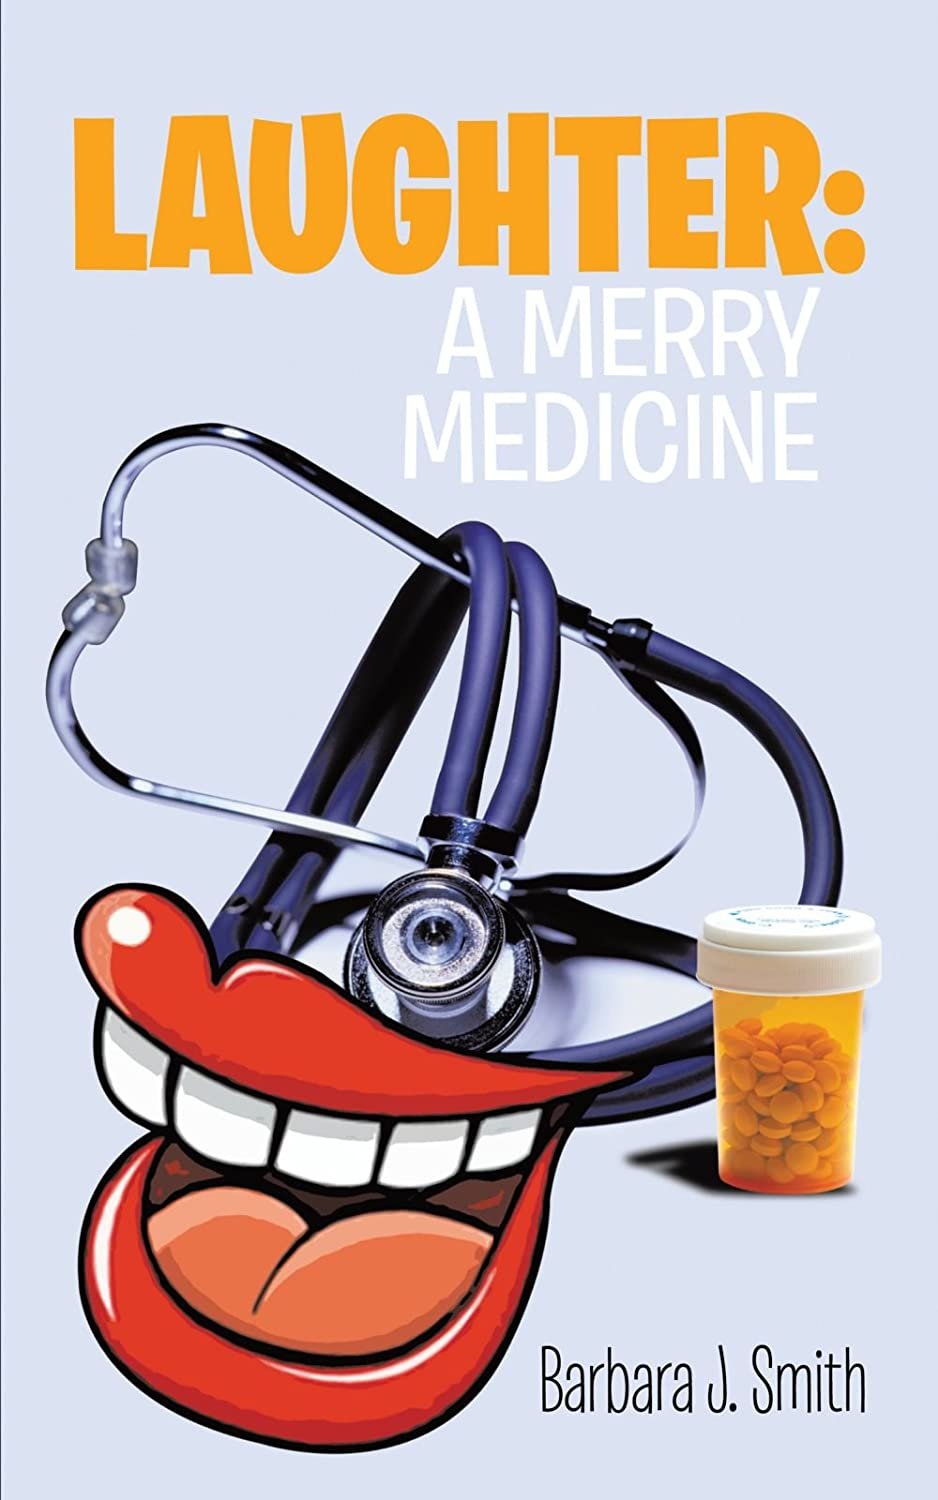 Laughter: A Merry Medicine